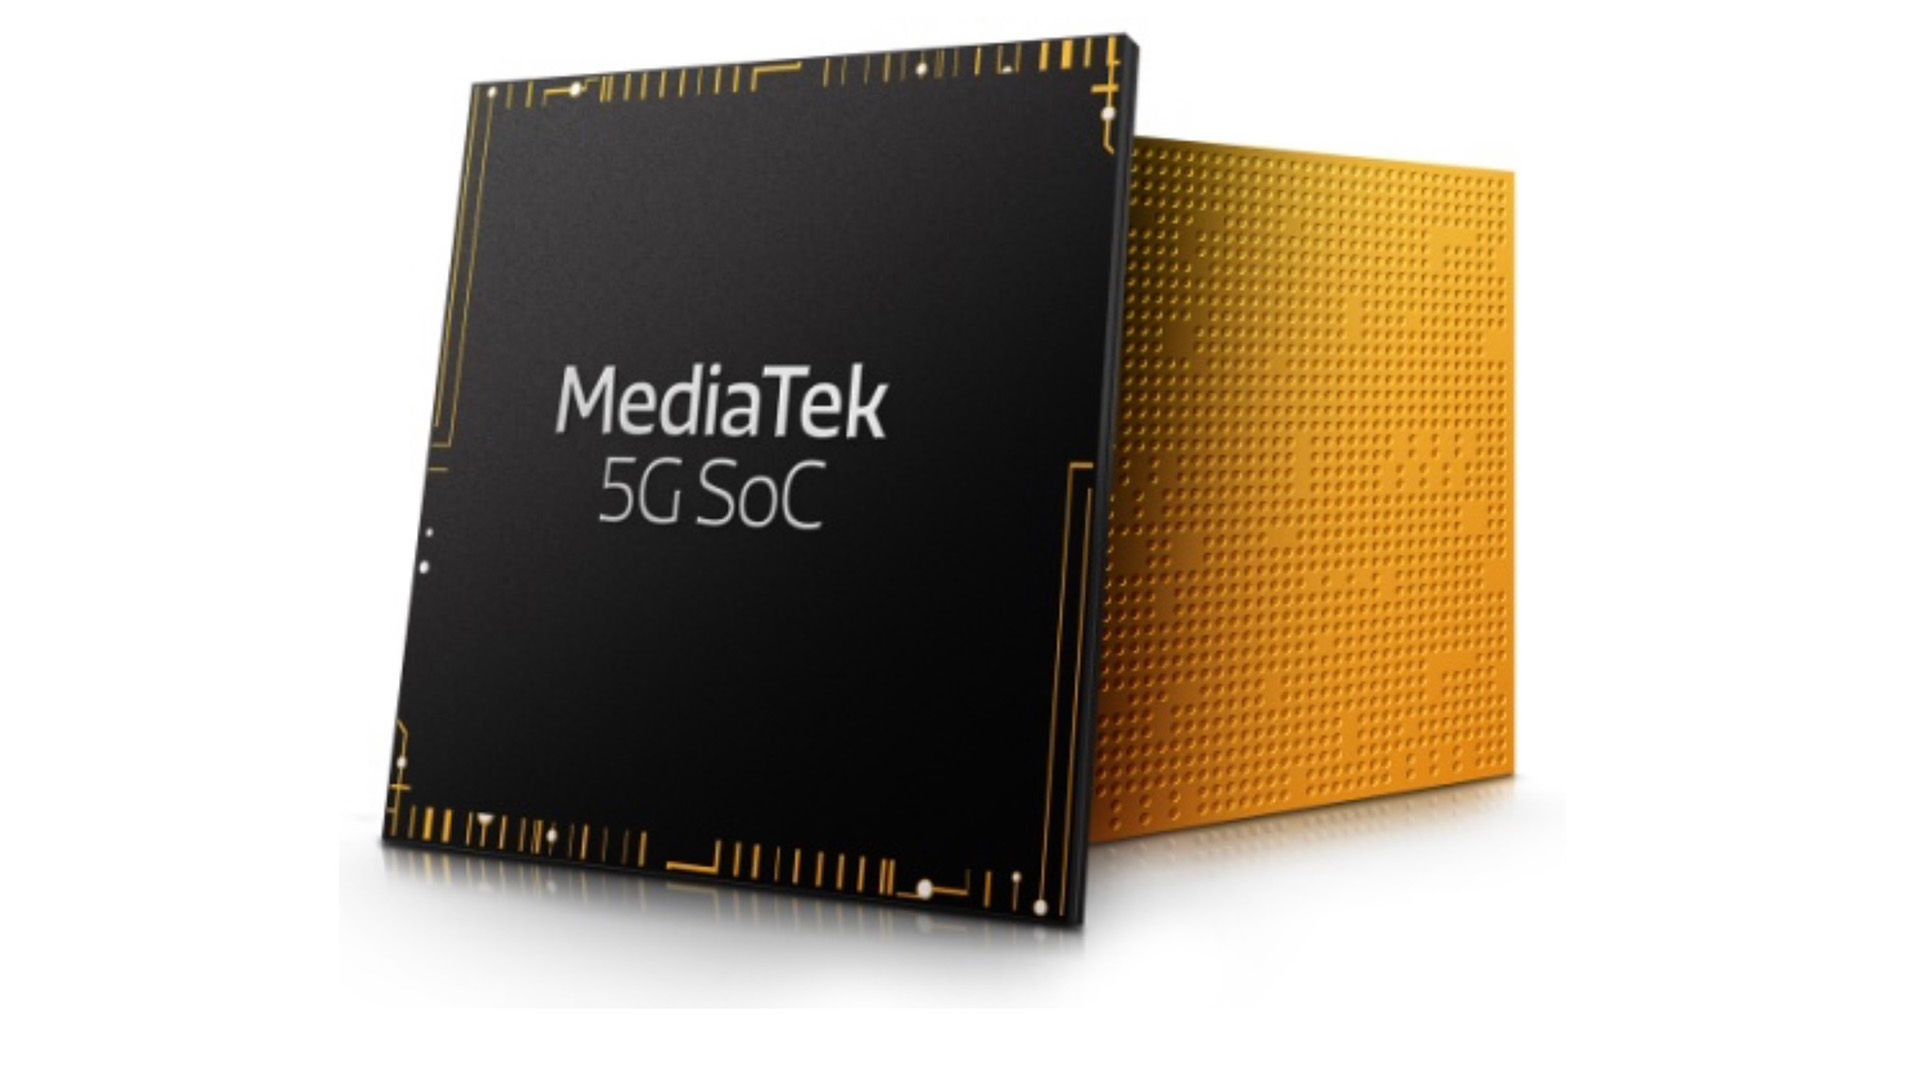 The MediaTek Dimensity 1000+ comes with enhanced 5G and 144Hz refresh rate support